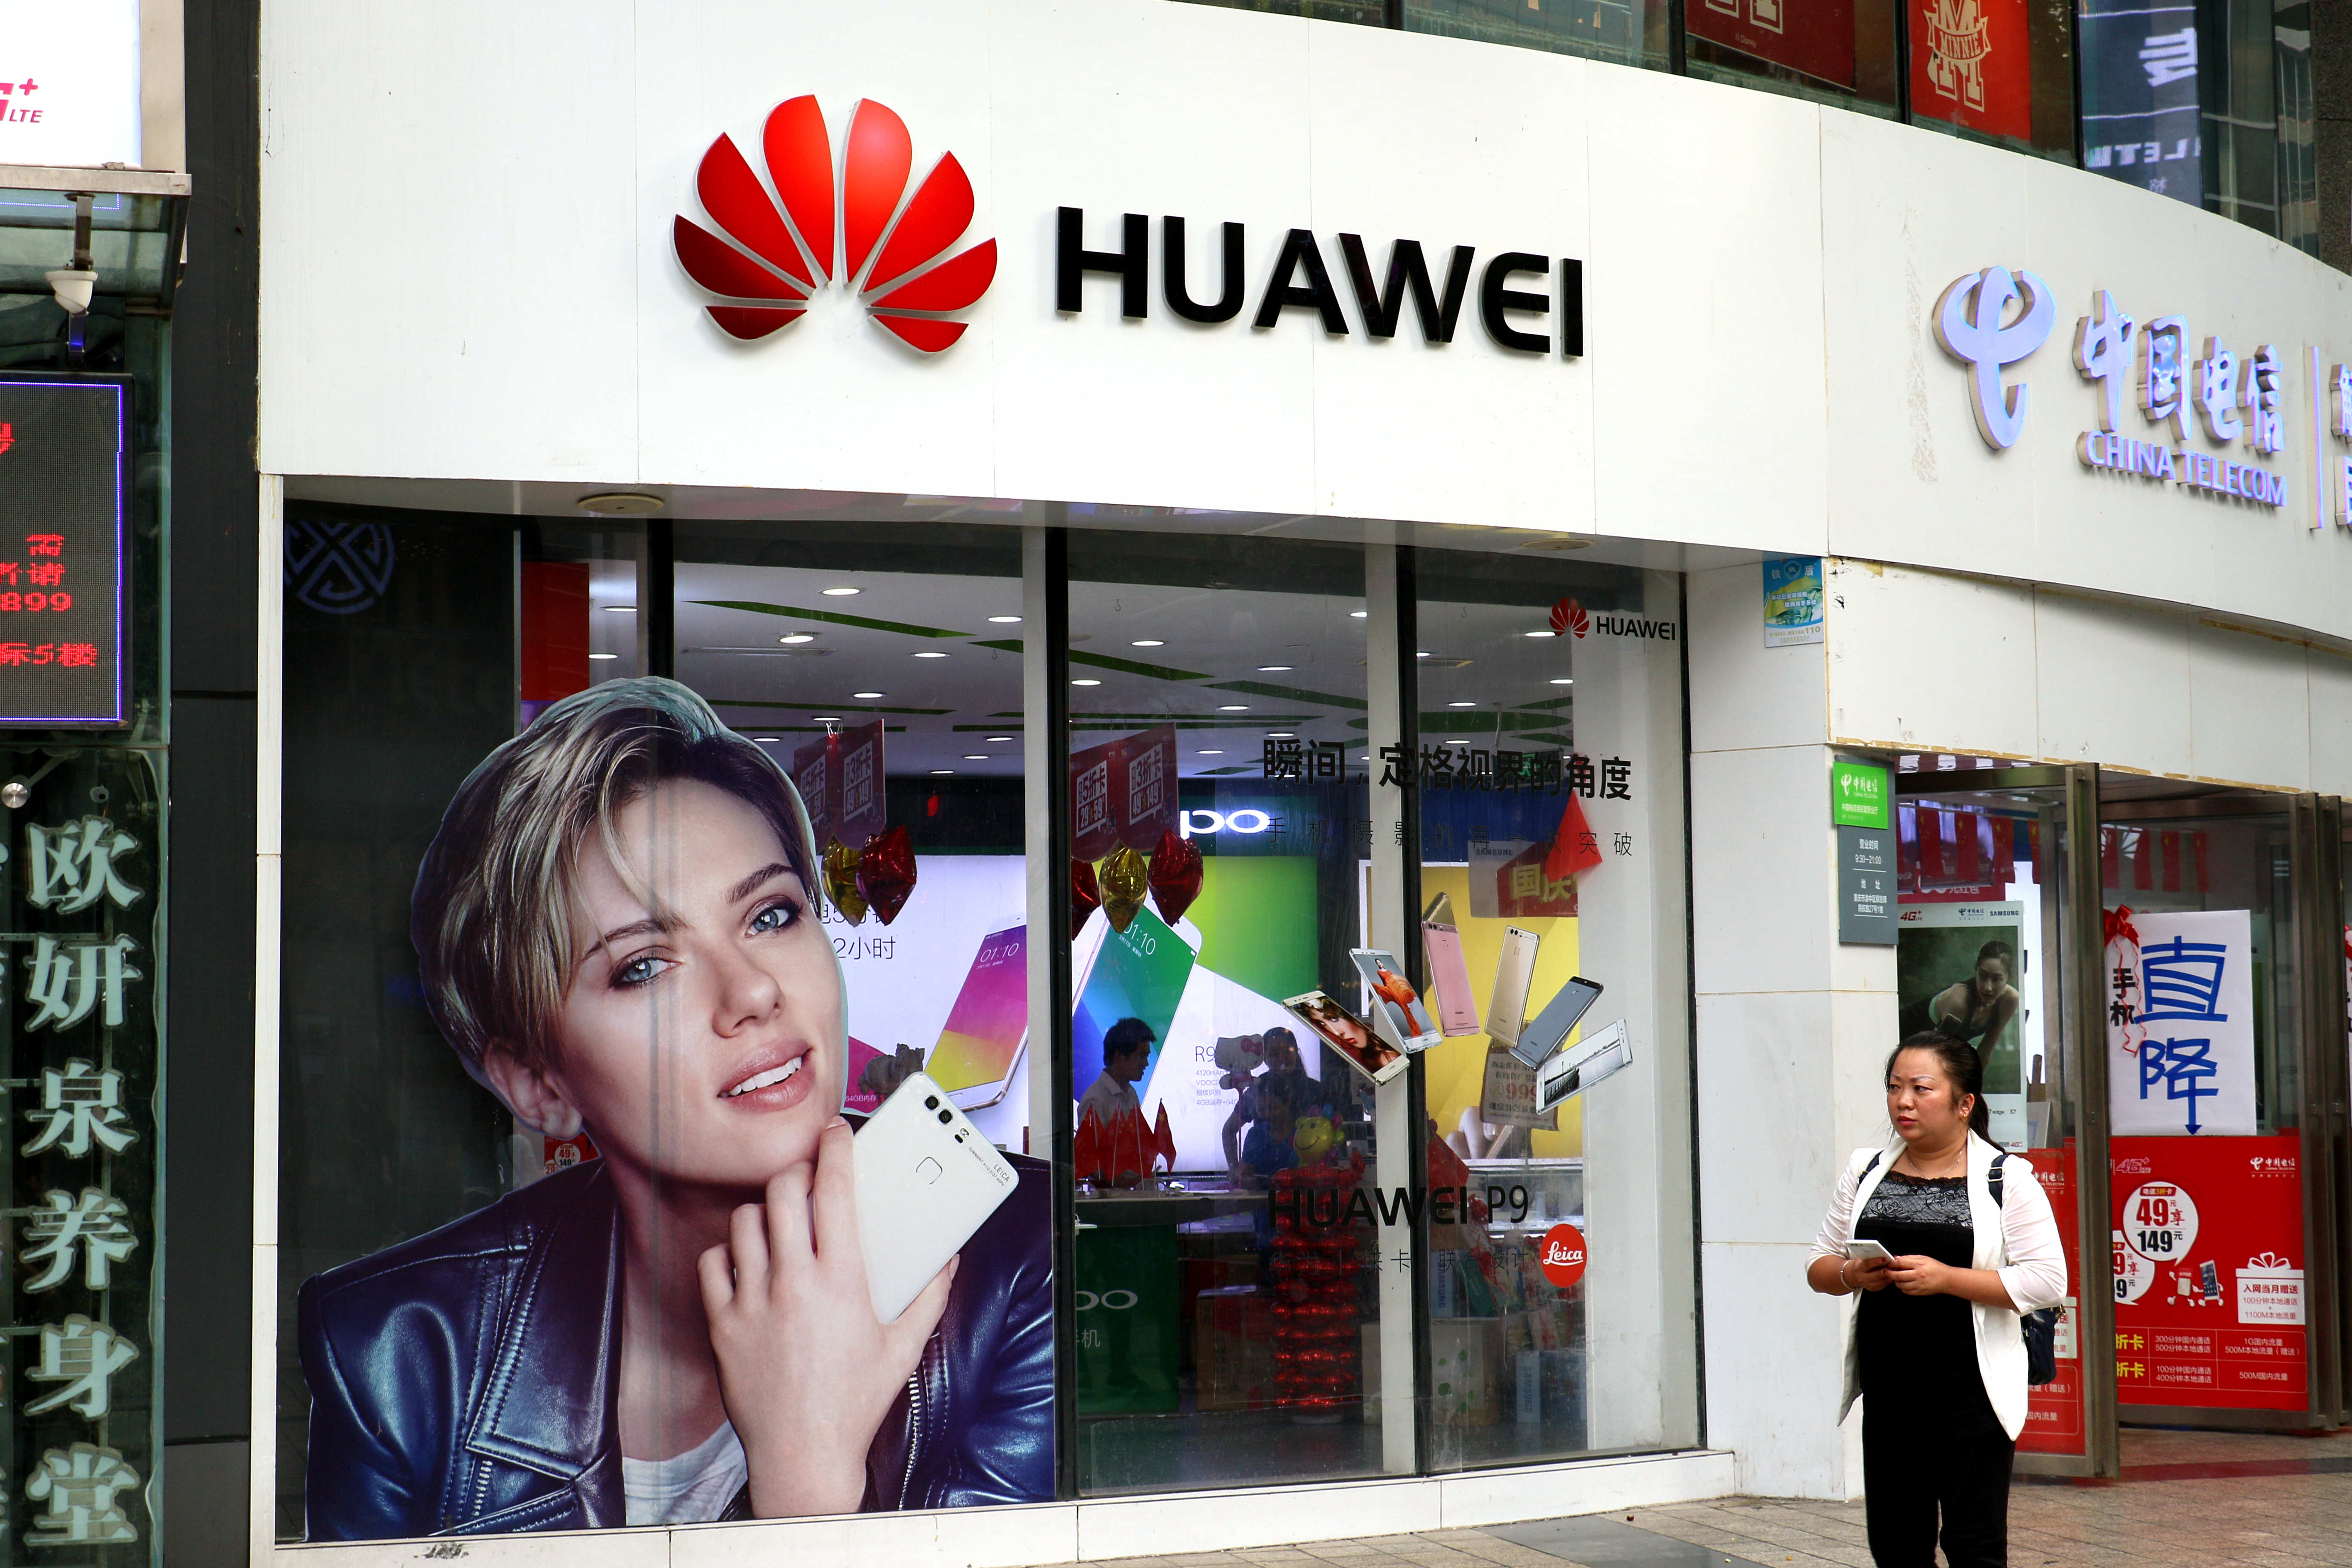 Chinese mobile company successfully penetrating Myanmar market